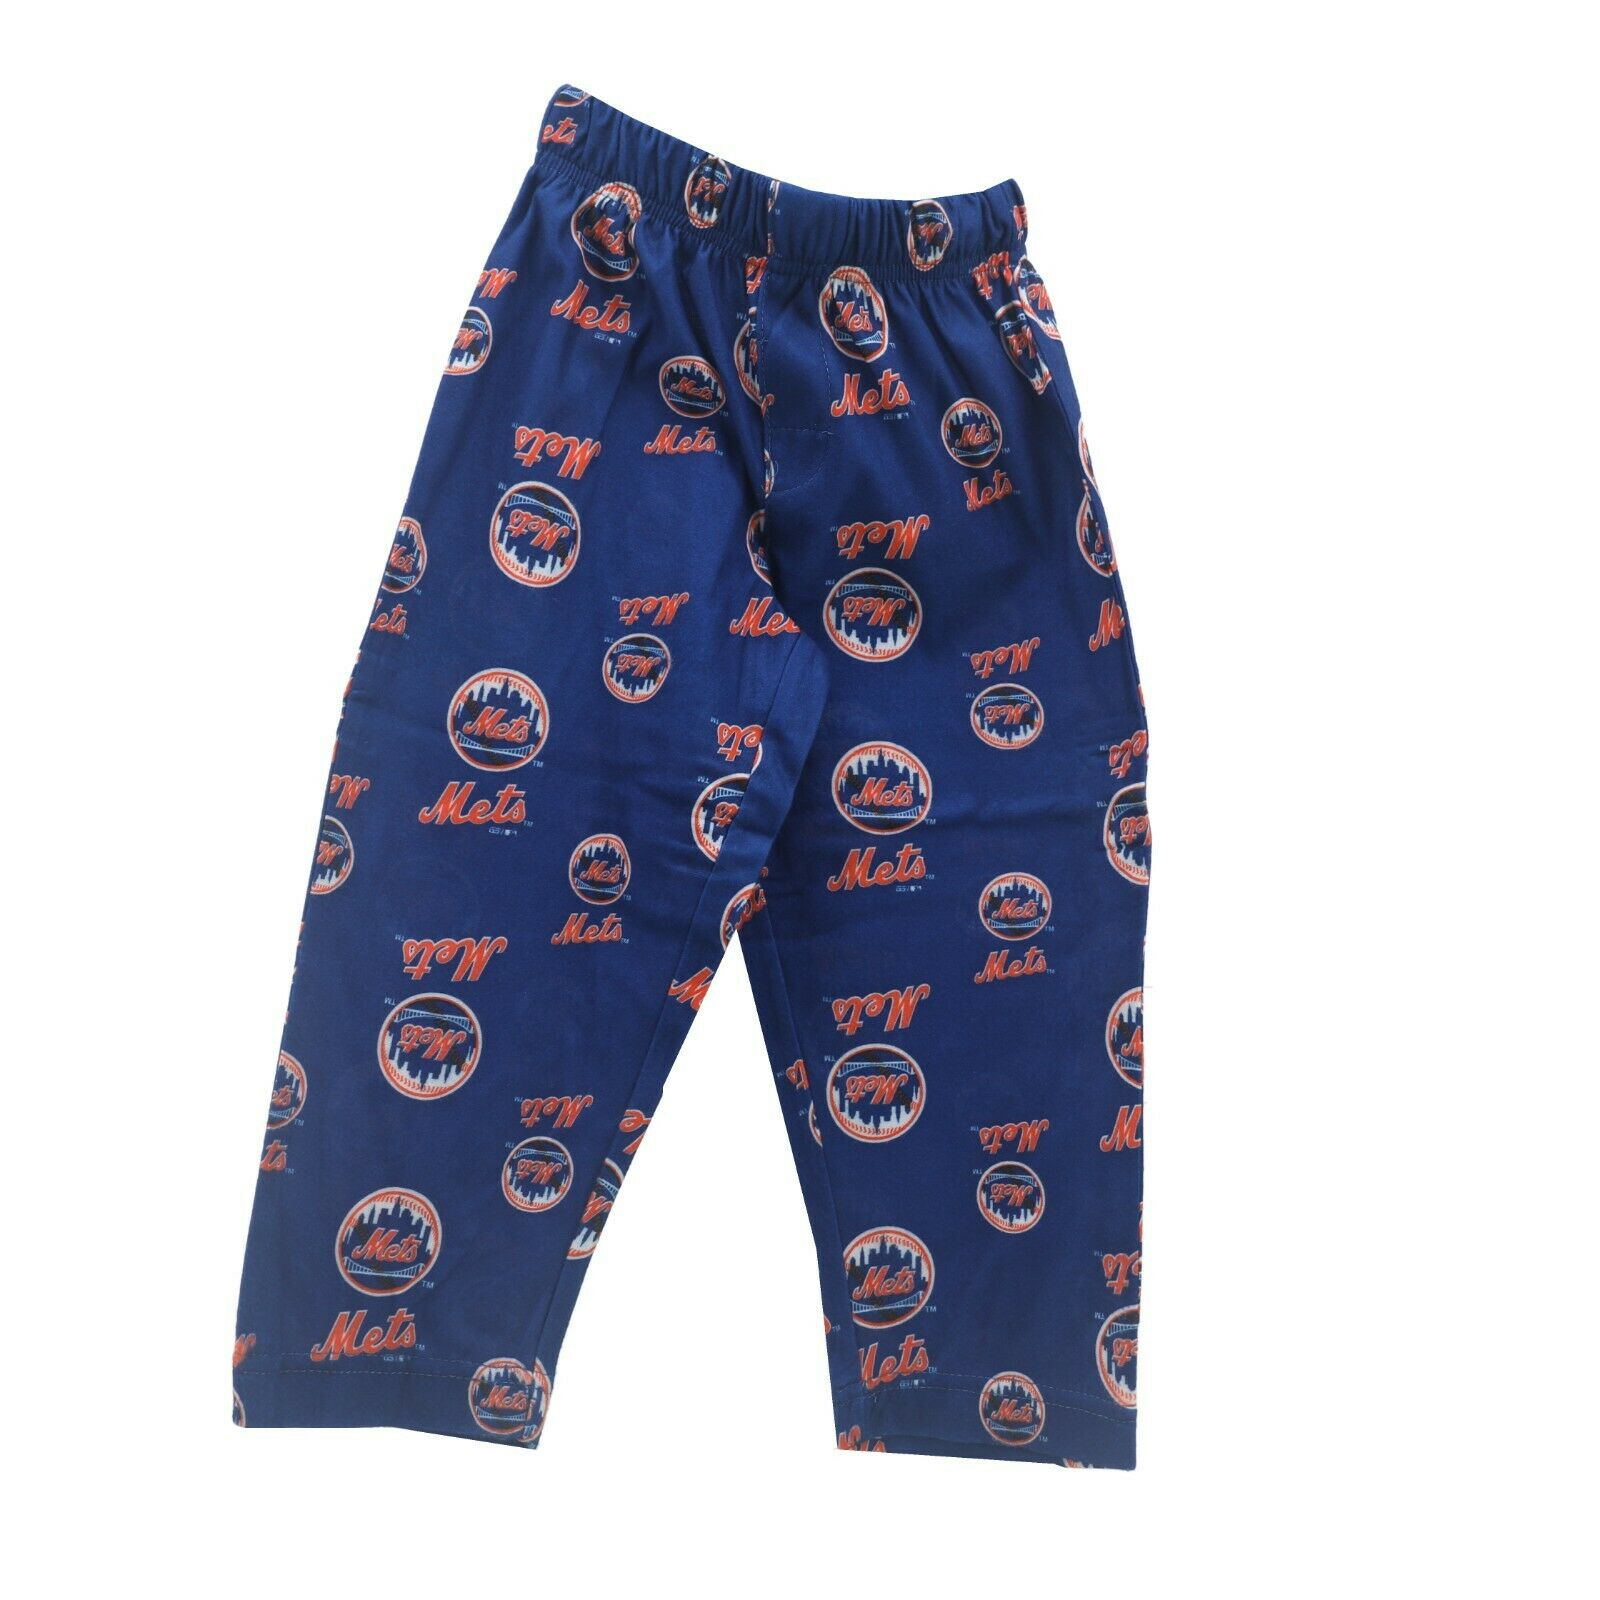 half off c82a7 e5c97 Details about New York Mets Official MLB Genuine Apparel Infant Toddler  Size Pajama Pants New